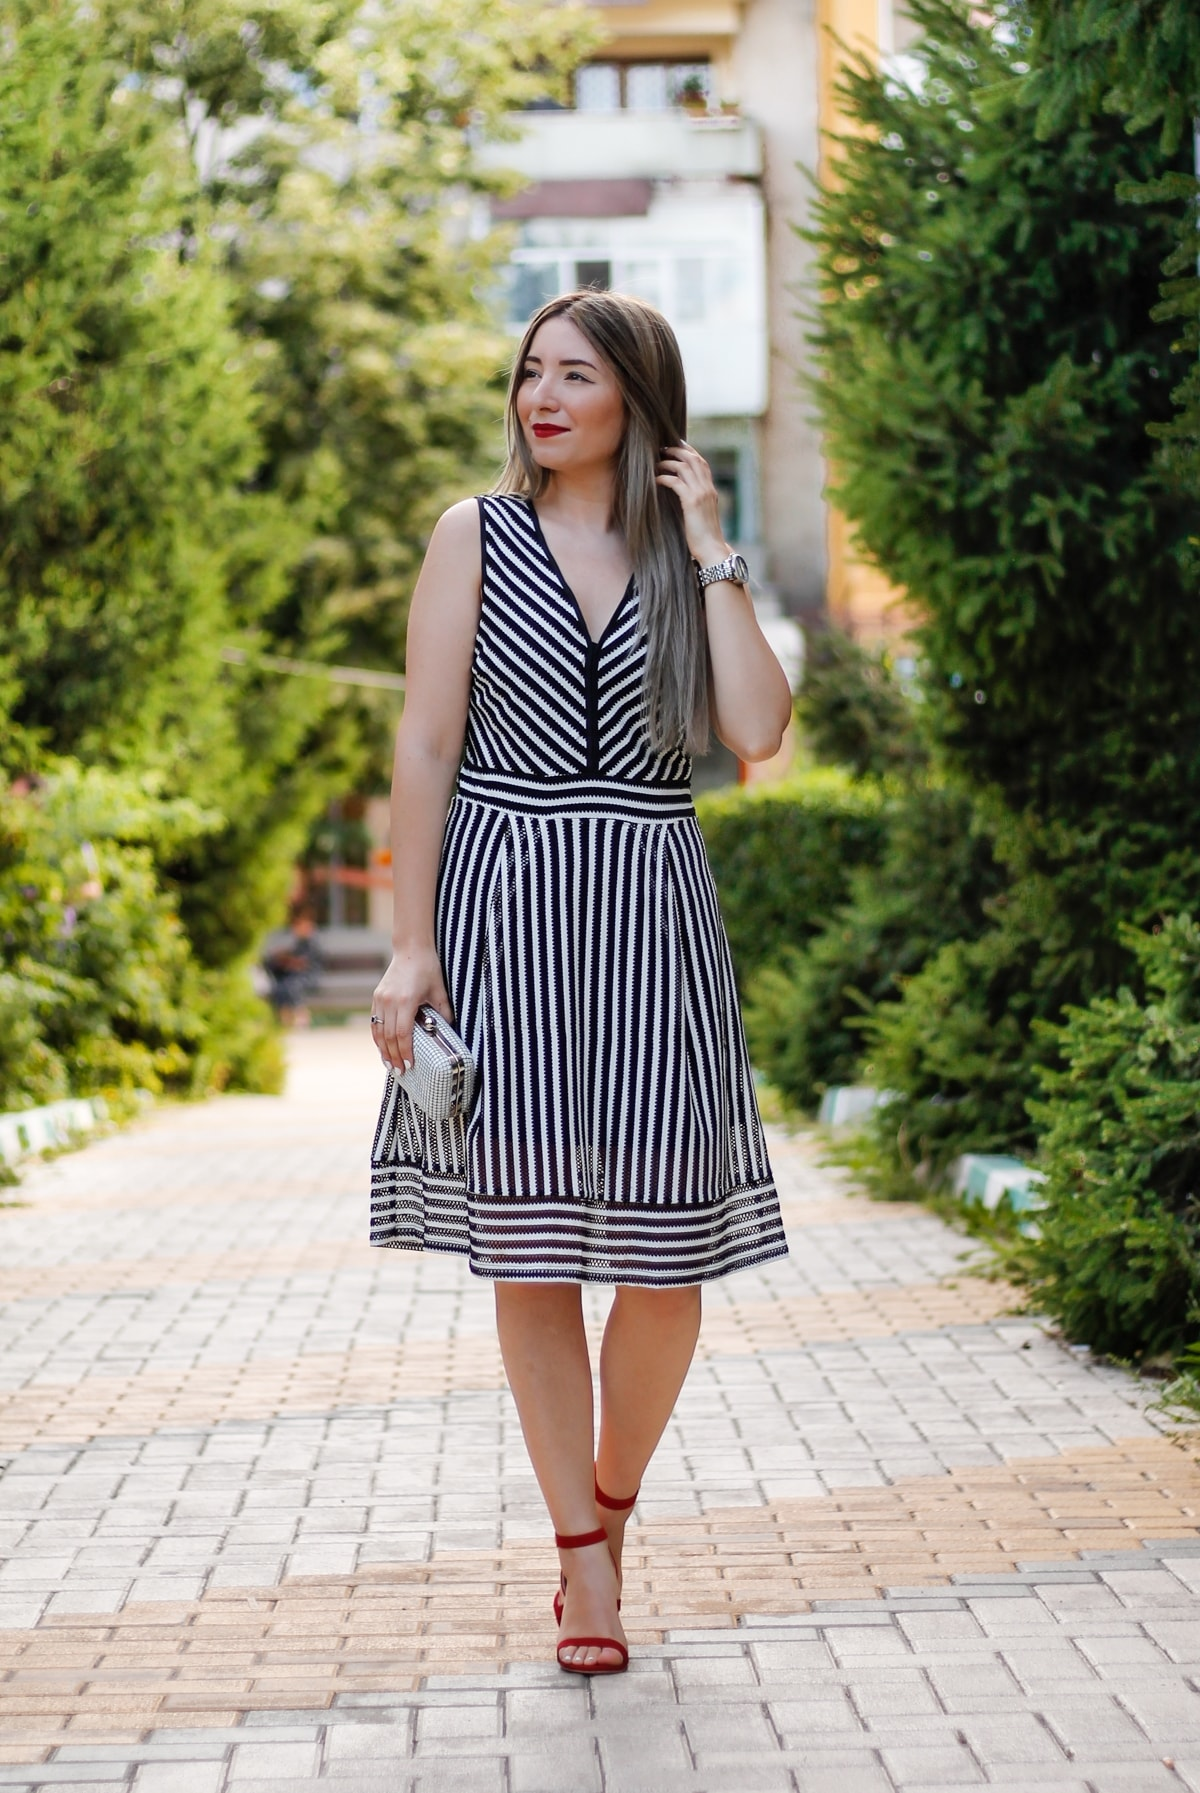 Street style: black and white stripes dress, red sandals, heels, granny hair, summer look, andreea ristea fashion blogger